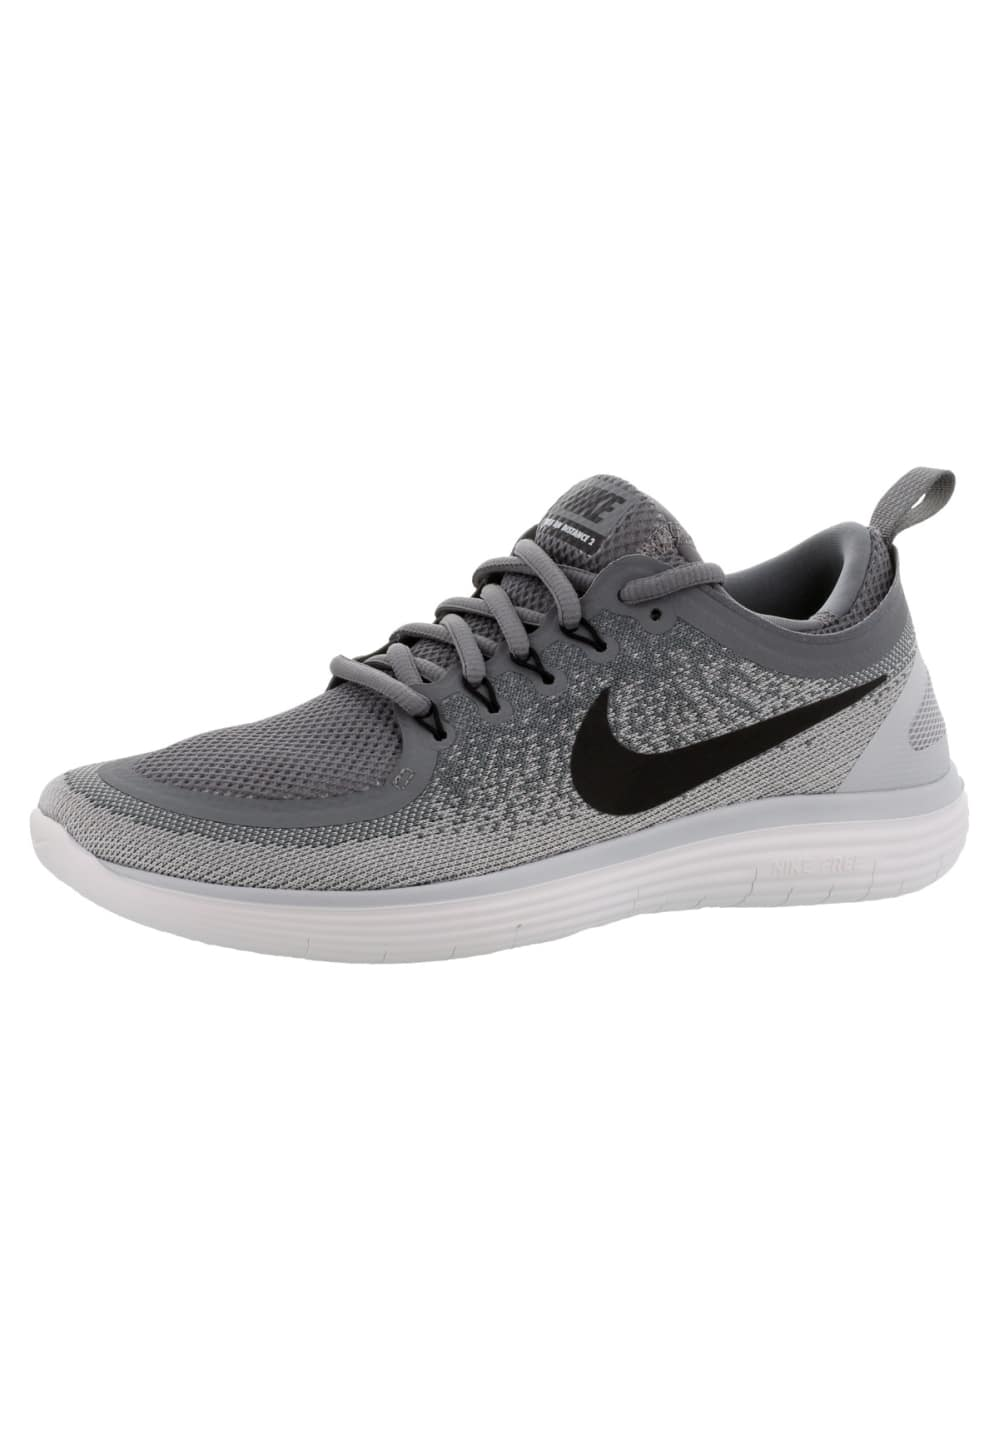 50684e5e8230 Next. -60%. Nike. Free RN Distance 2 - Running shoes for Women. Regular  Price  Save 60% ...